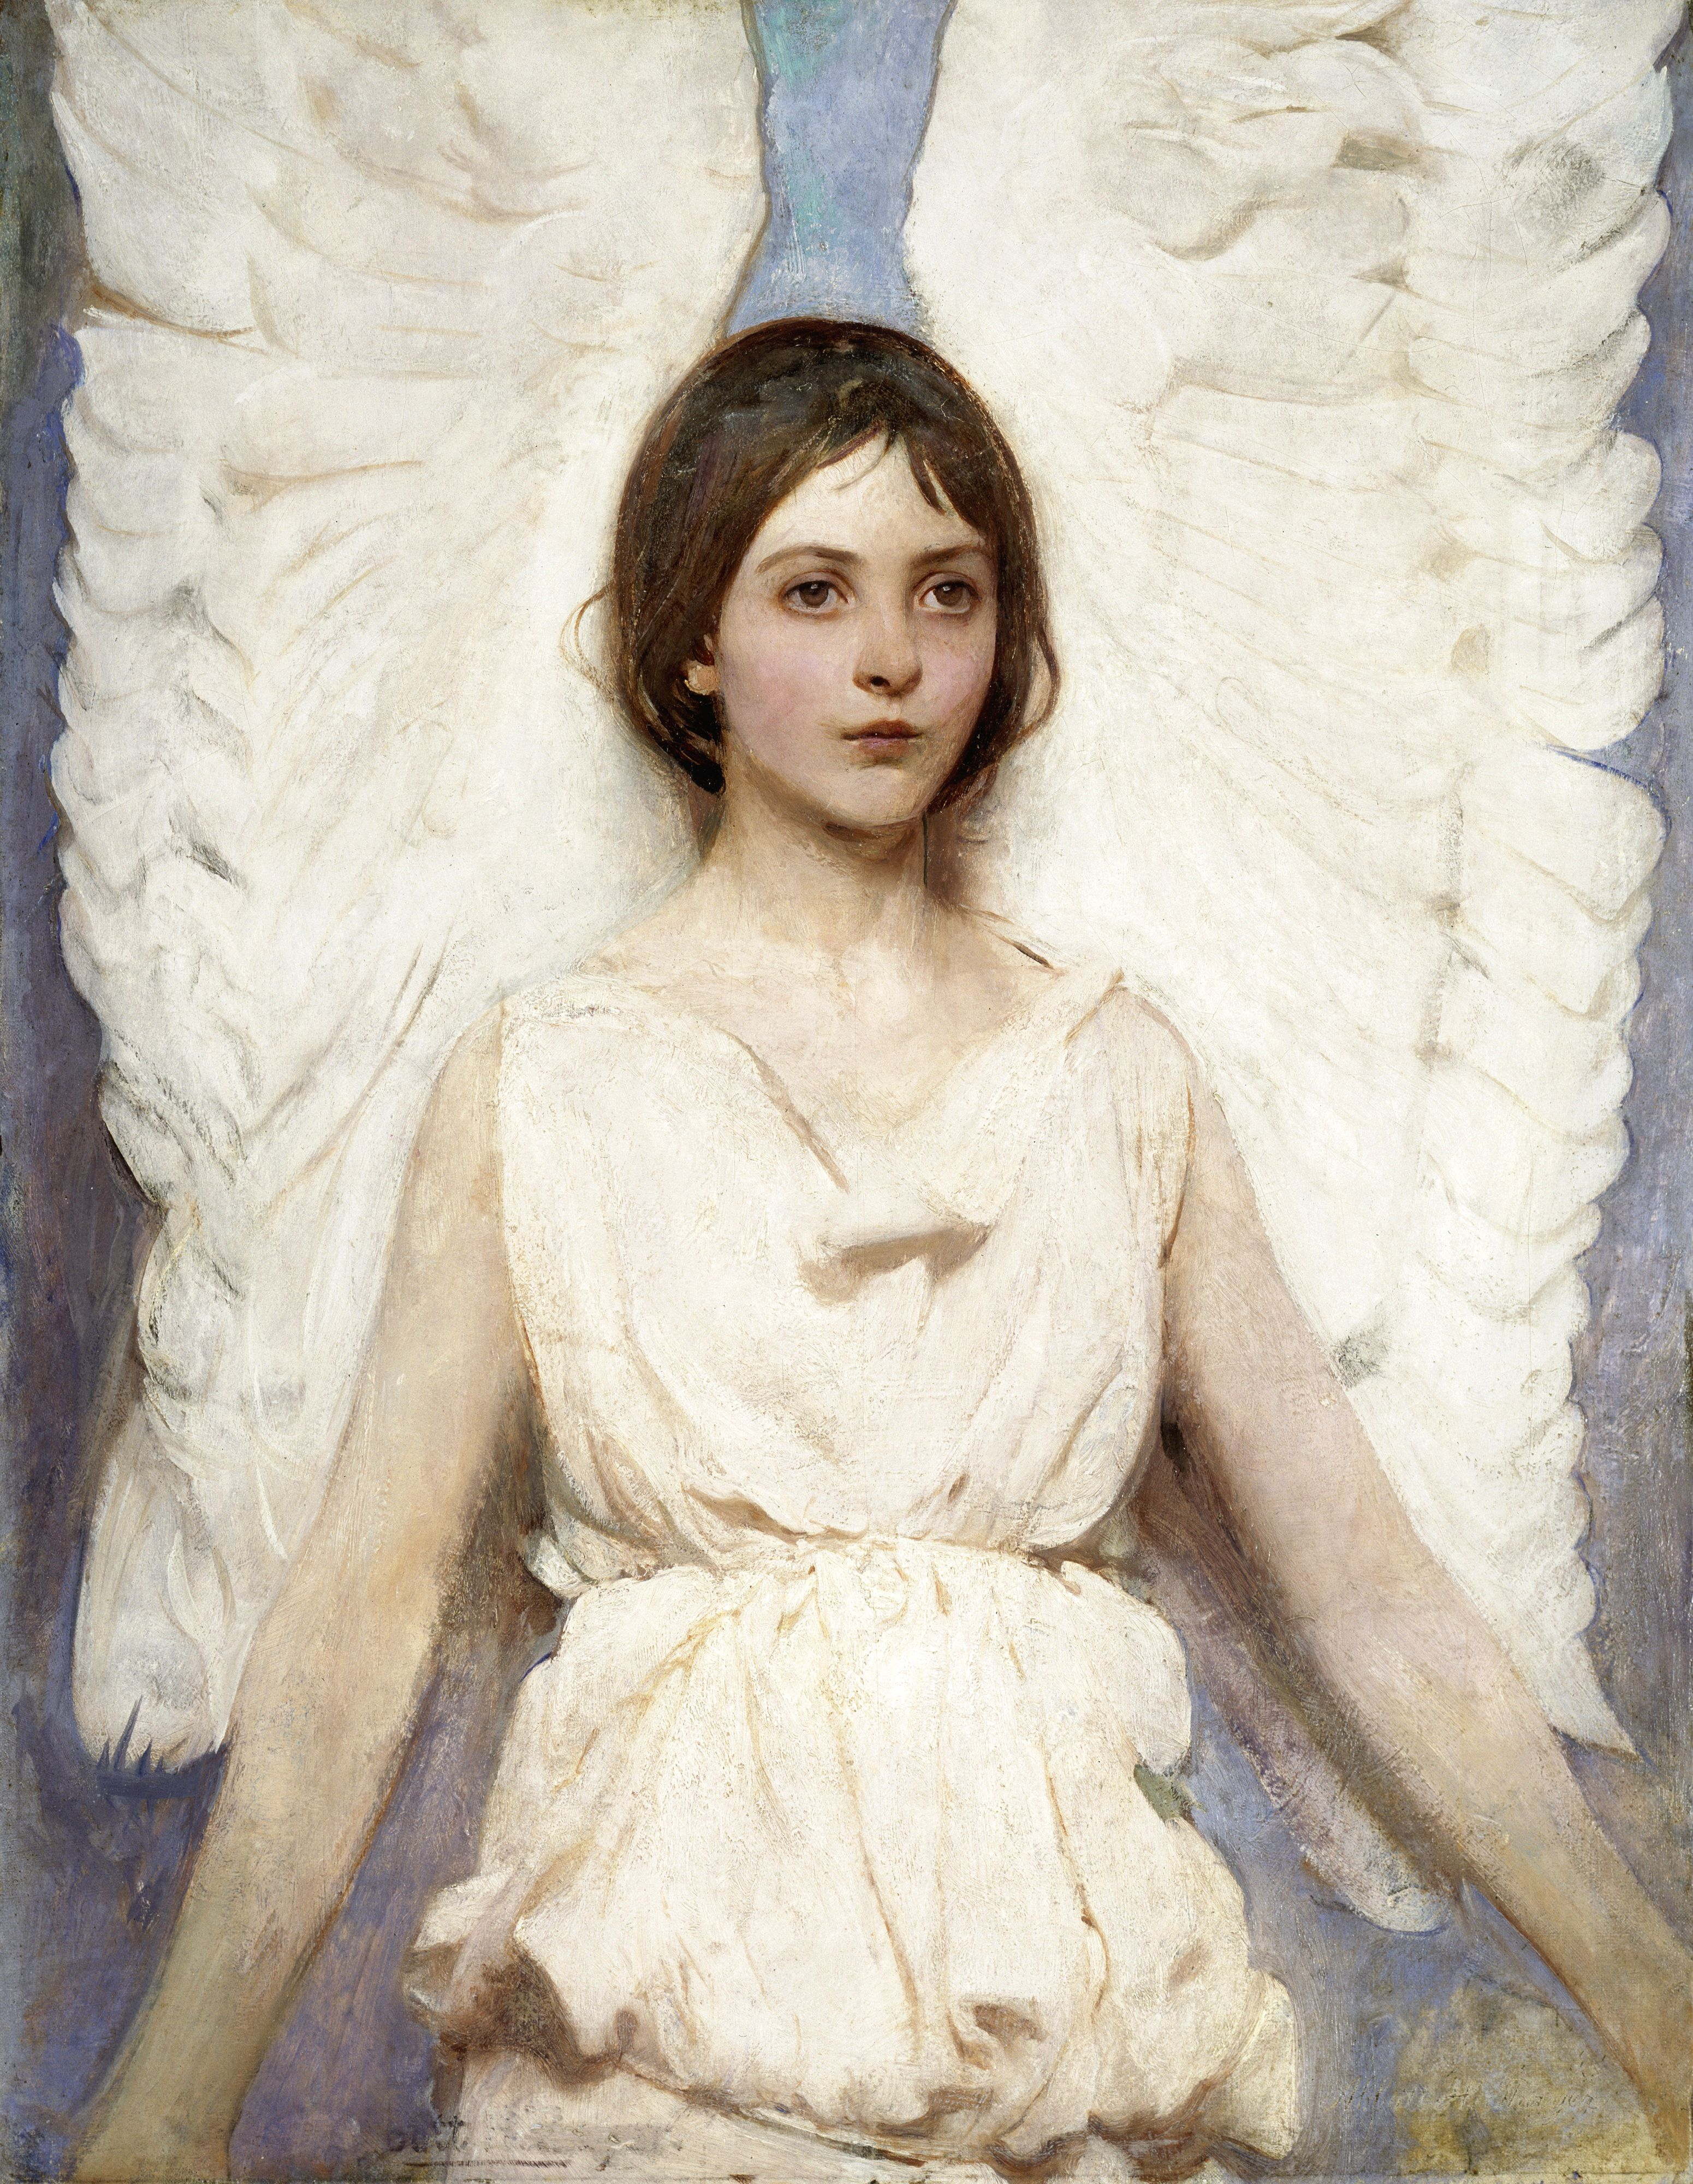 Angel, by Abbott Handerson Thayer, 1887